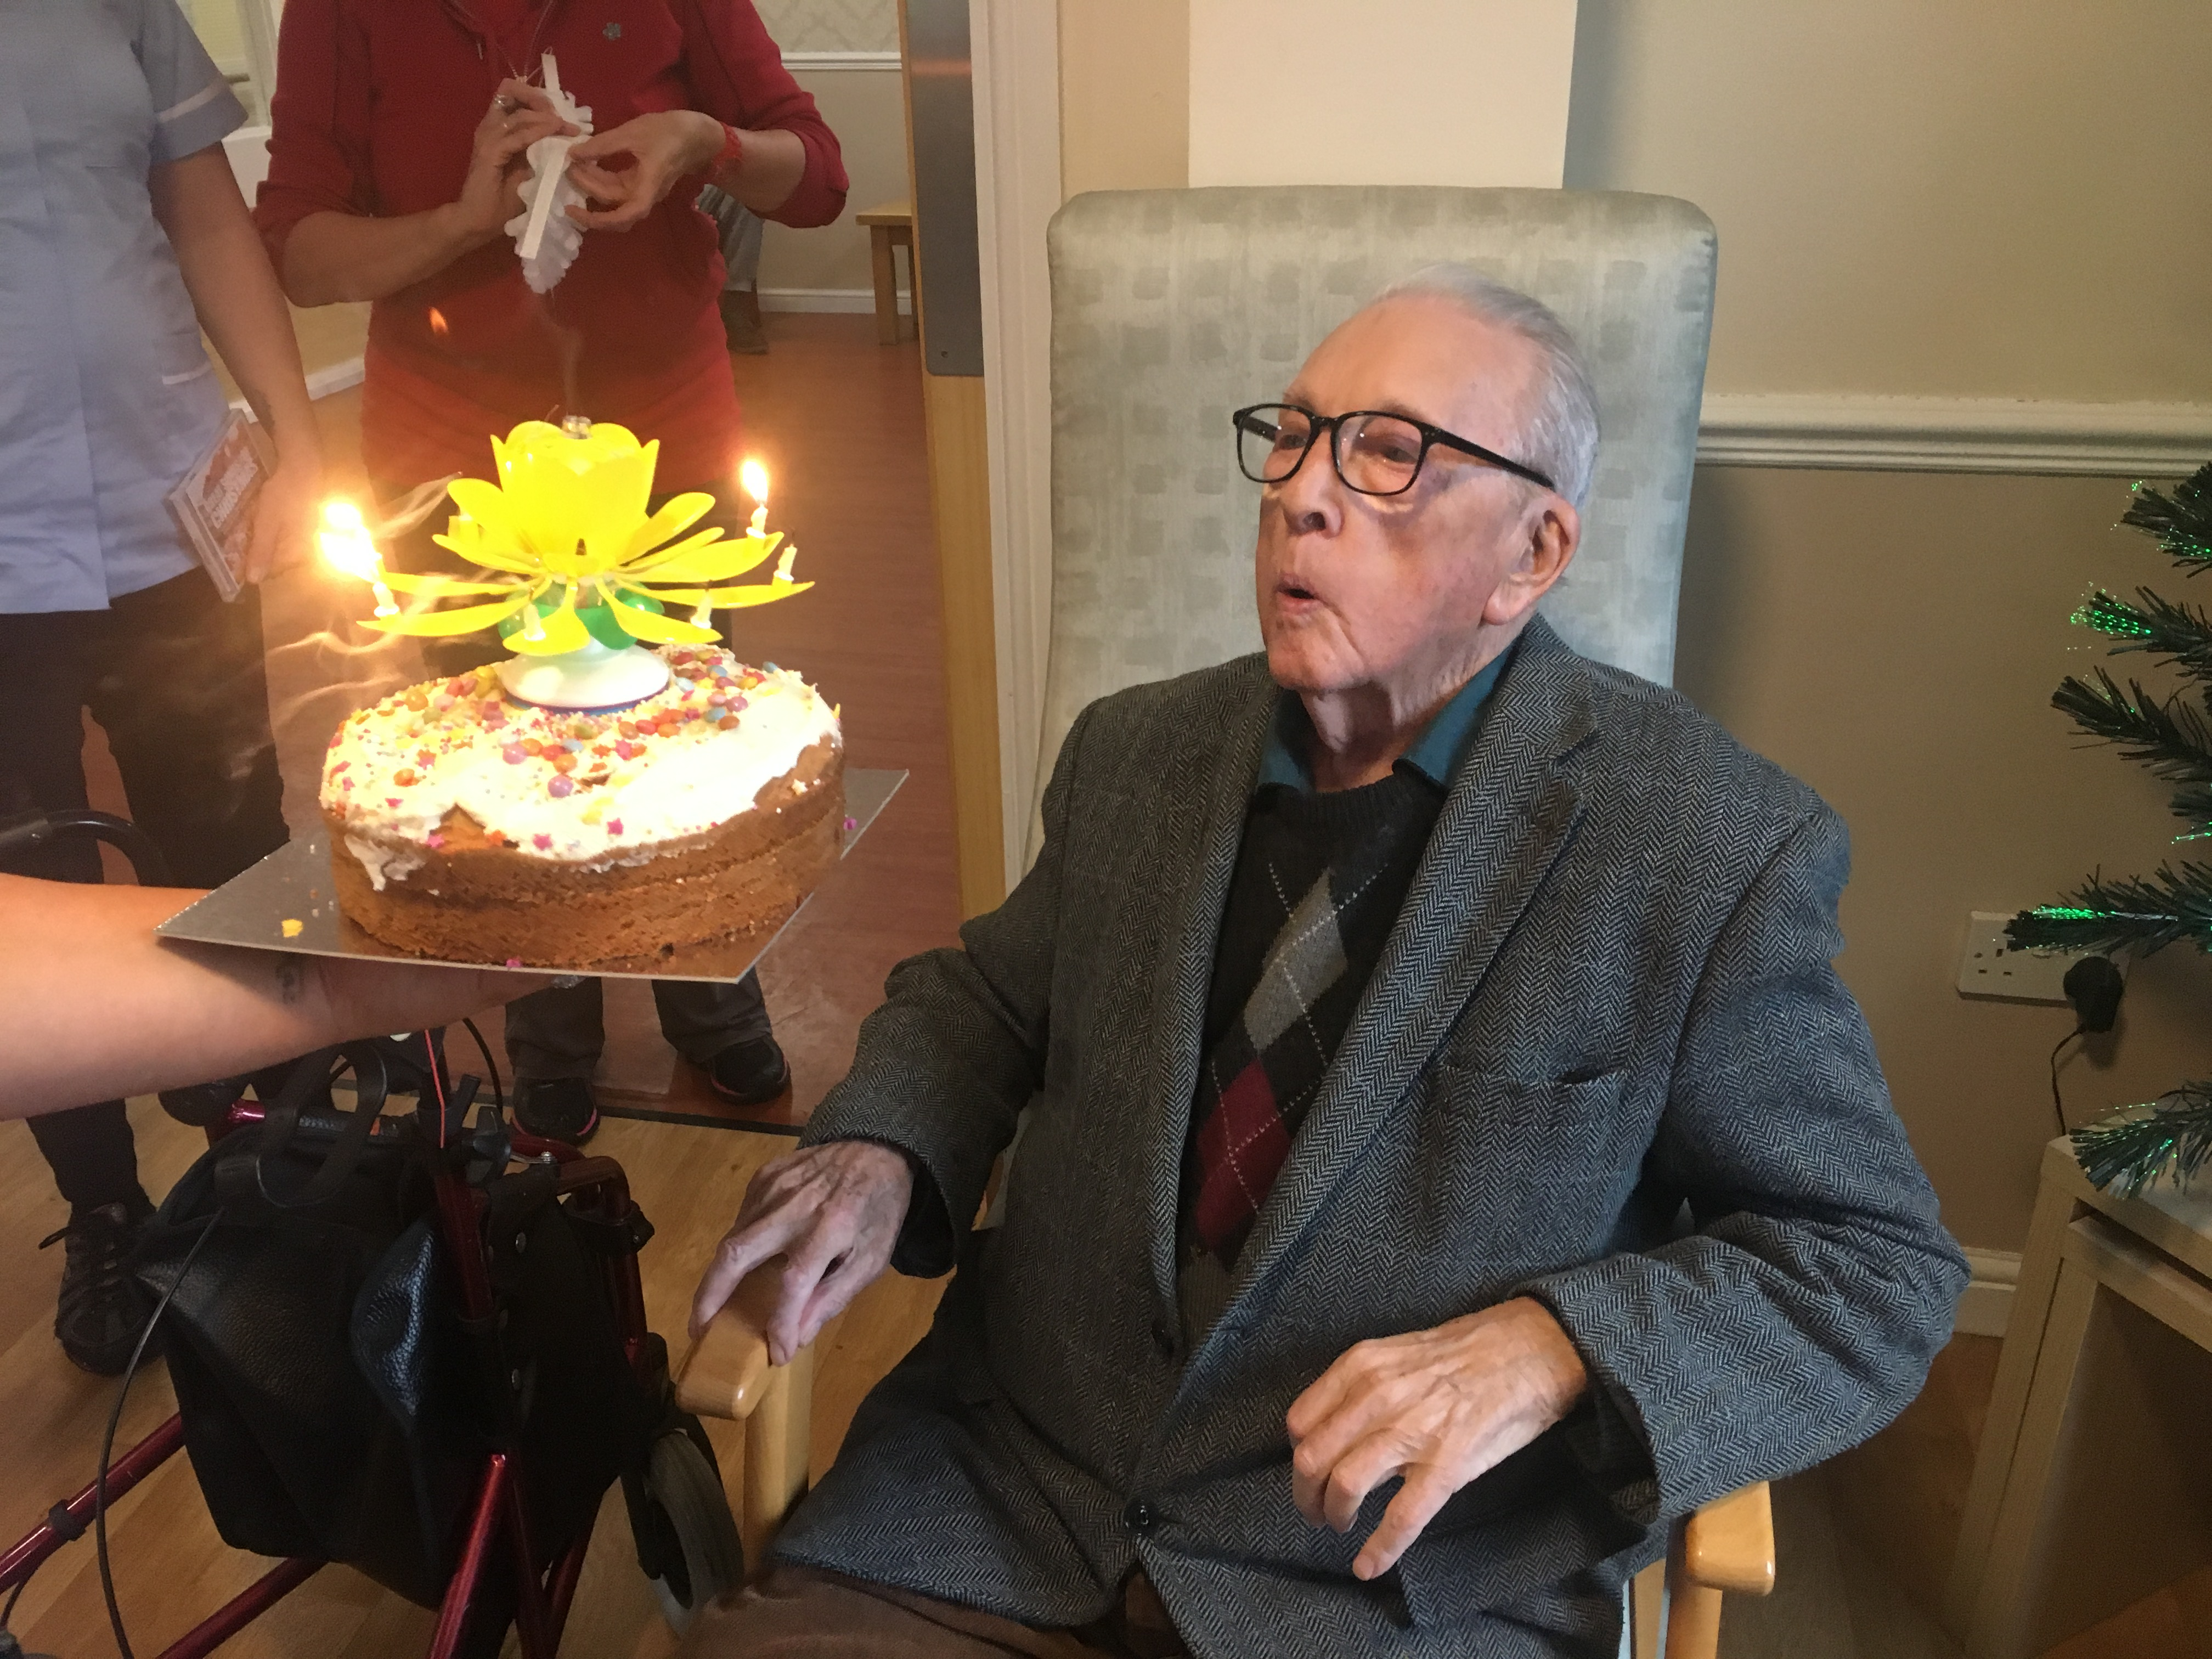 Special Birthday Celebrations at Four Seasons Care Centre: Key Healthcare is dedicated to caring for elderly residents in safe. We have multiple dementia care homes including our care home middlesbrough, our care home St. Helen and care home saltburn. We excel in monitoring and improving care levels.